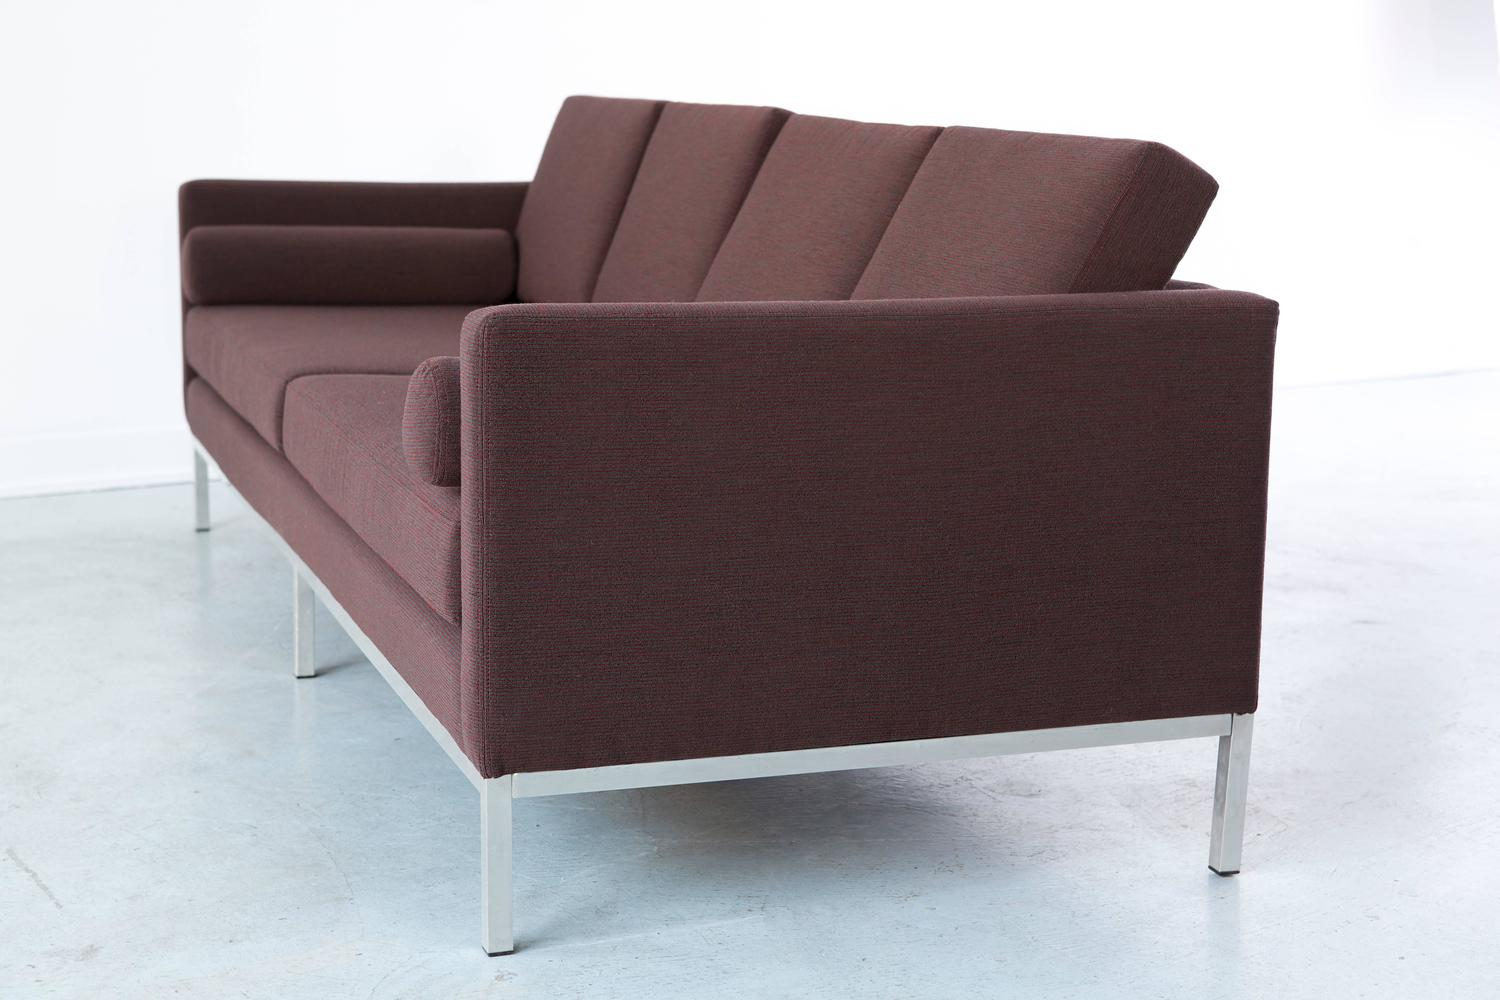 milo baughman sofa newly reupholstered for sale at 1stdibs